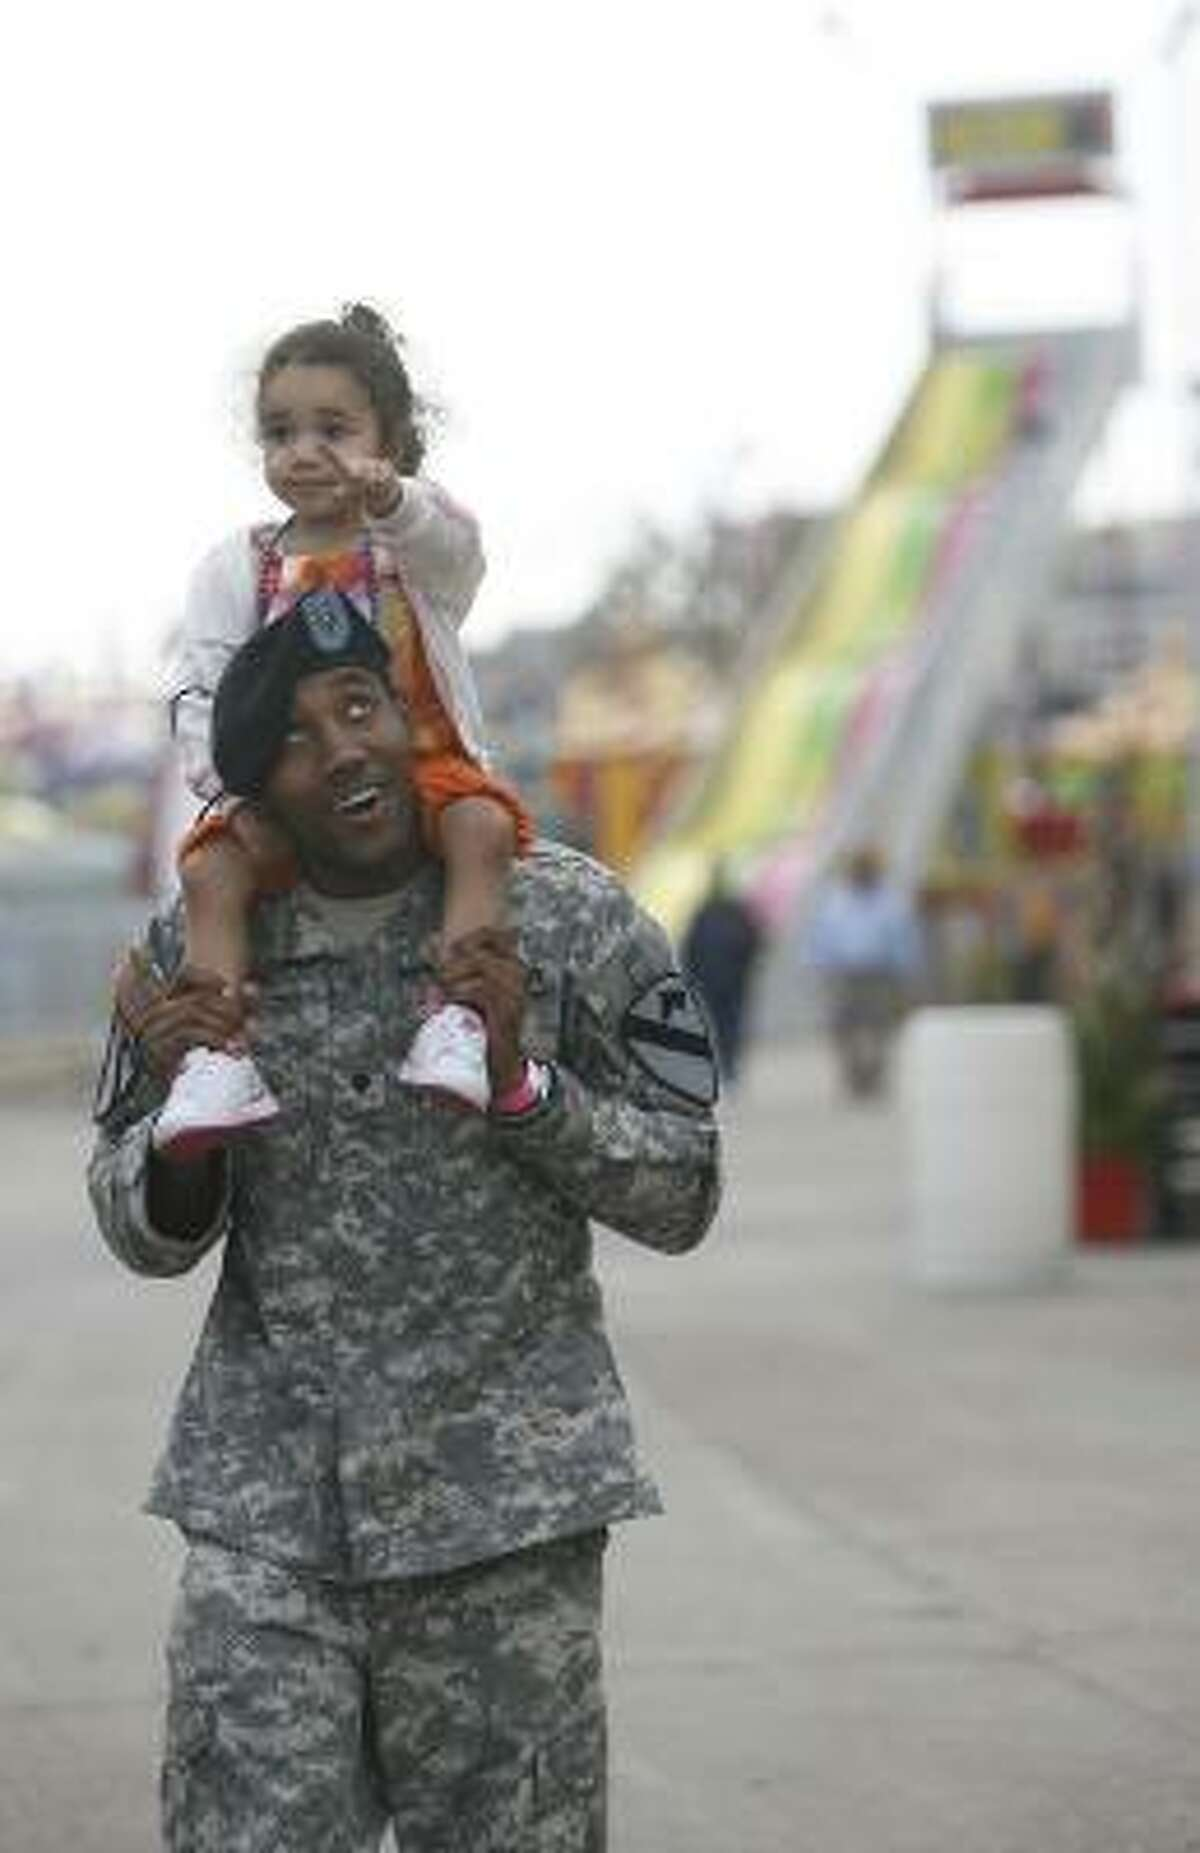 Joshua Union, 24, carries daughter Gabriella Union, 2, as they wonder around the Houston Livestock Show and Rodeo on Support the Troops Day.